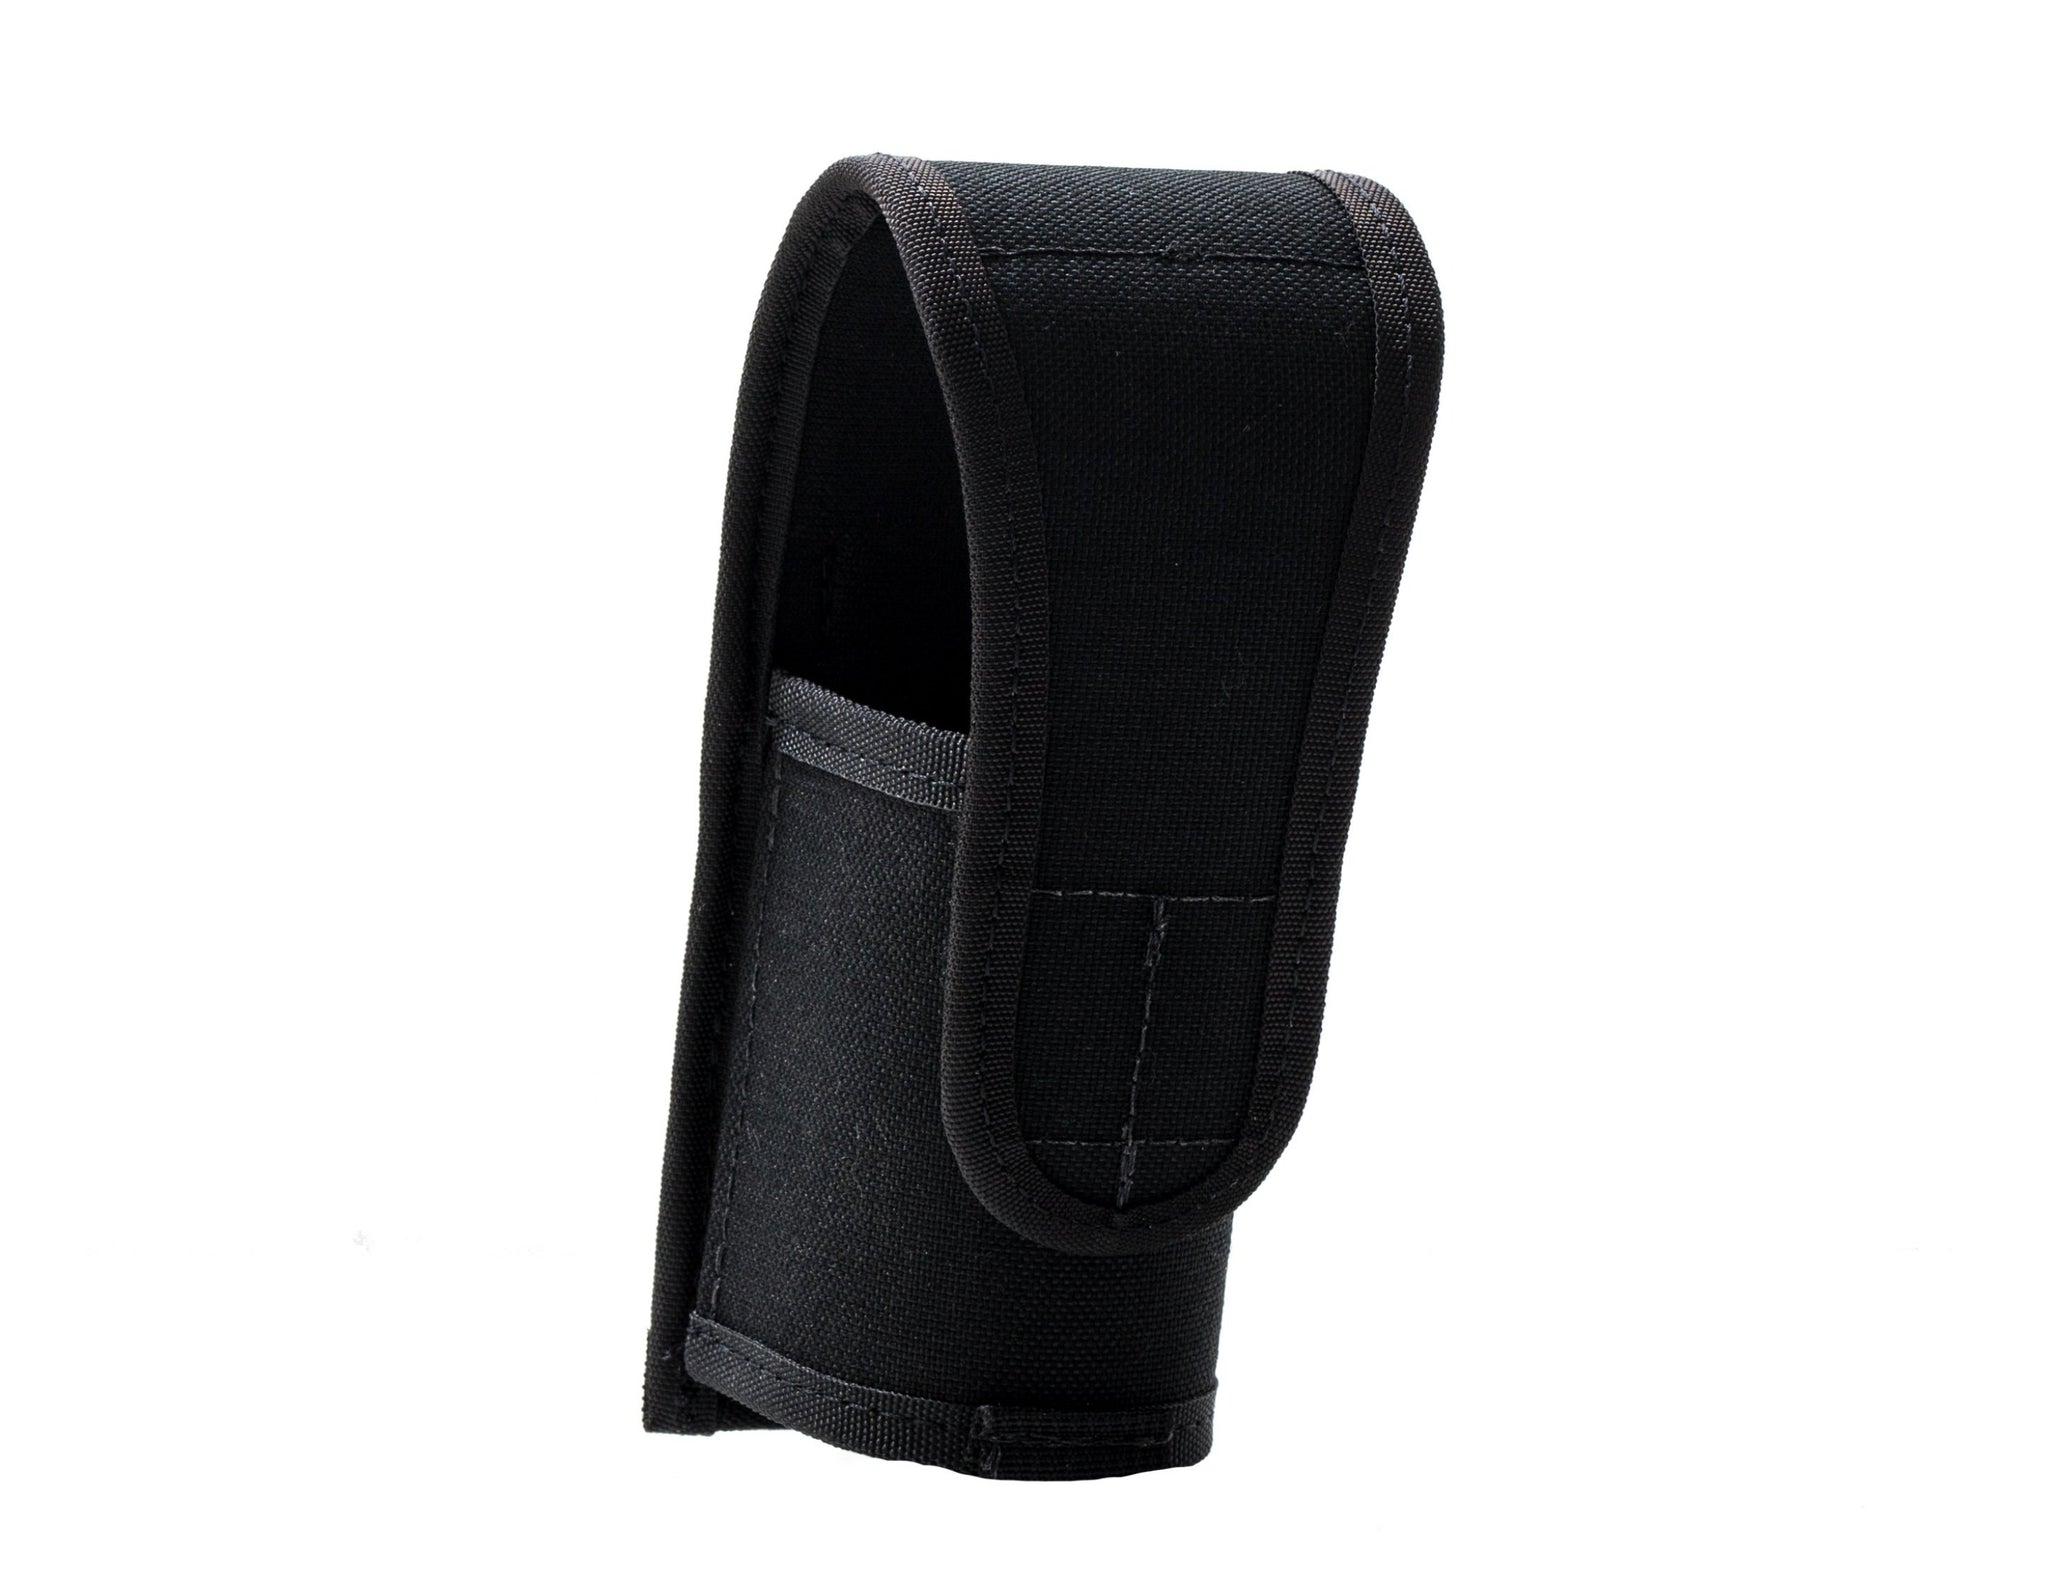 Reflex Protect Blackhawk Holster